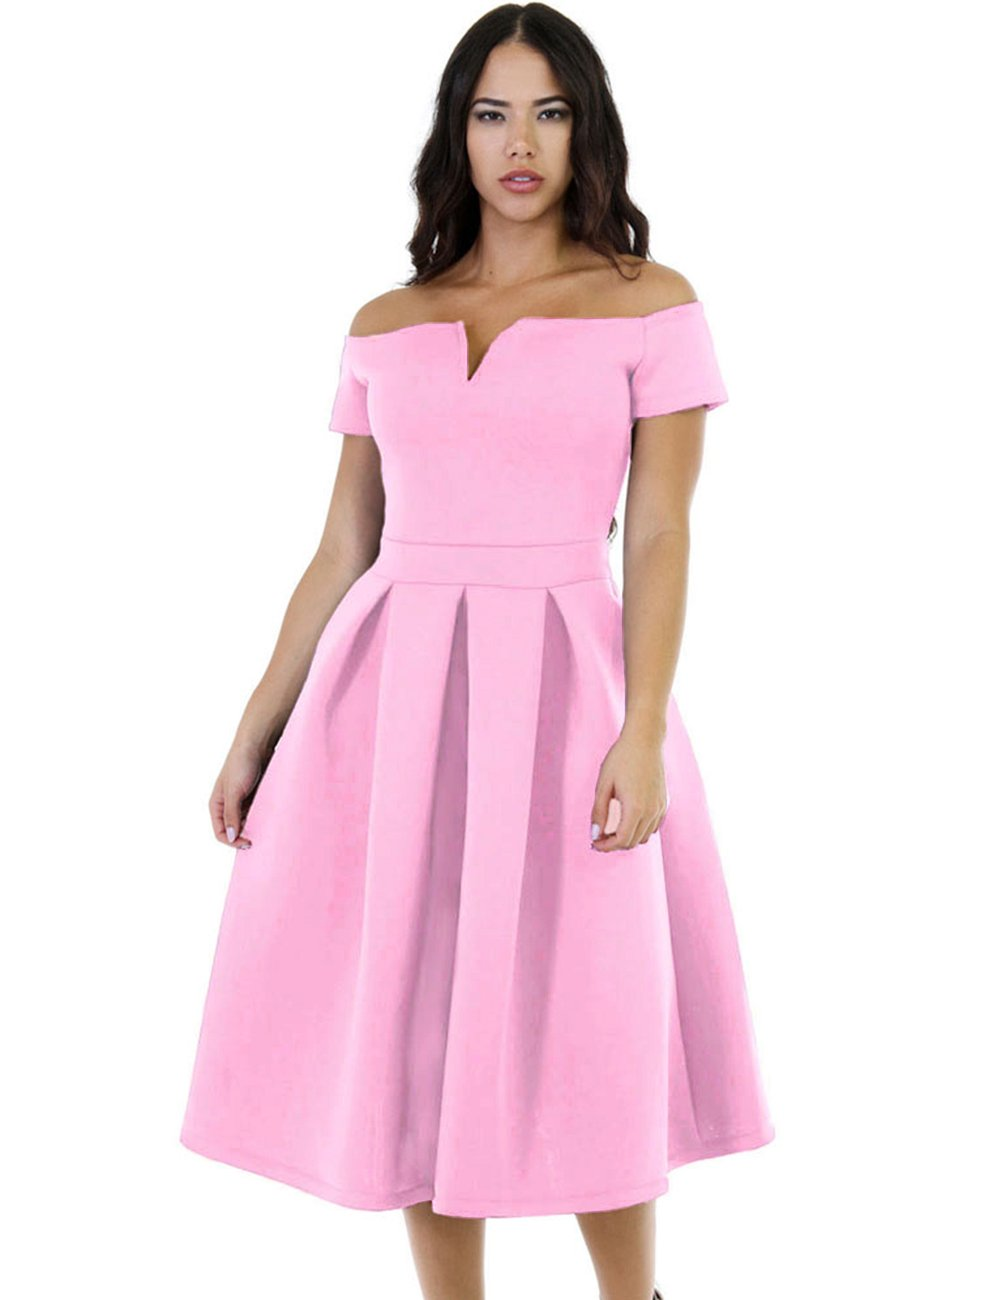 Lalagen Women's Vintage 1950s Party Cocktail Wedding Swing Midi Dress Pink XXXL